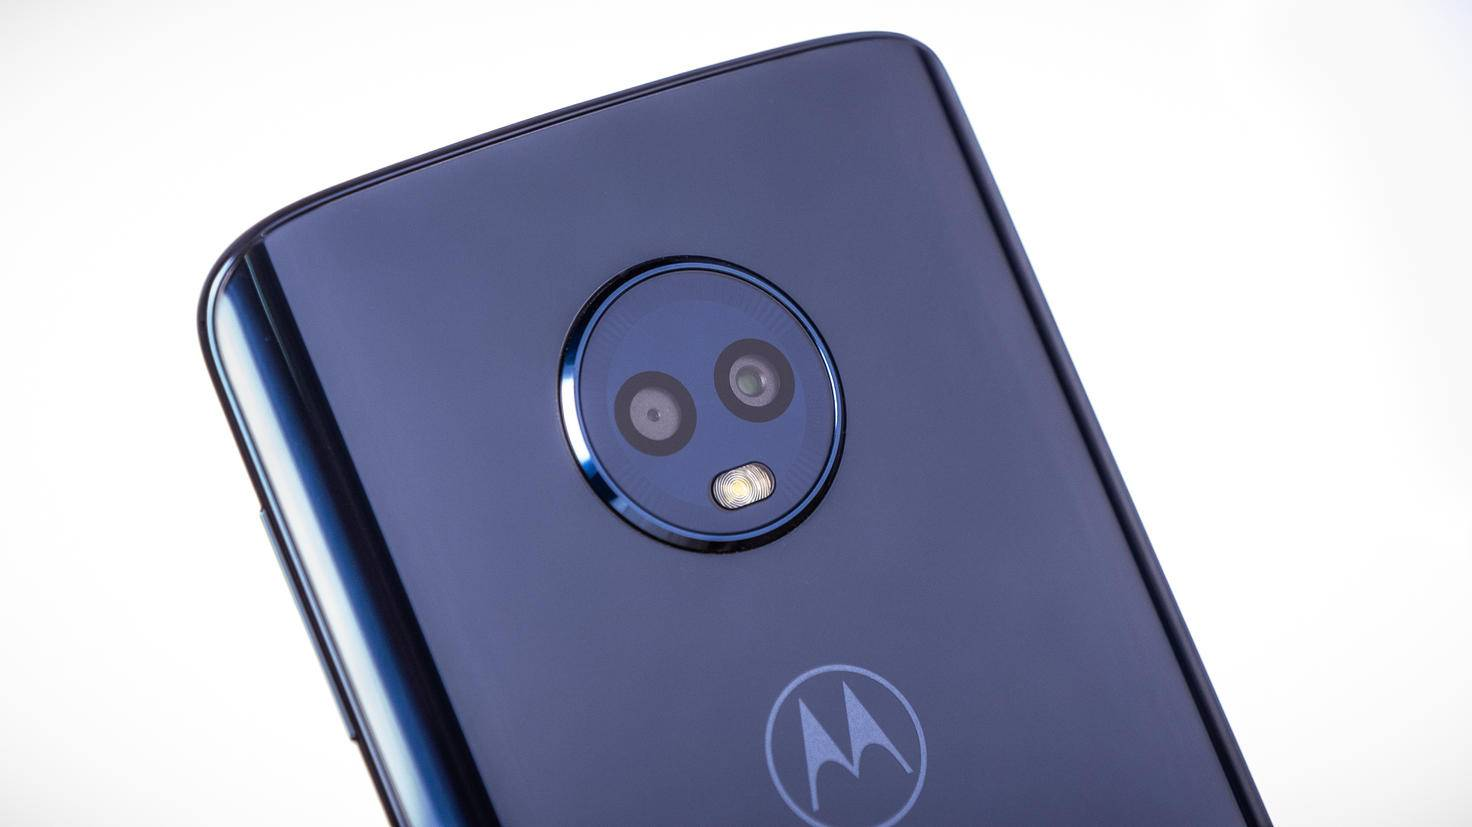 Motorola-Moto-G6-TURN-ON-6